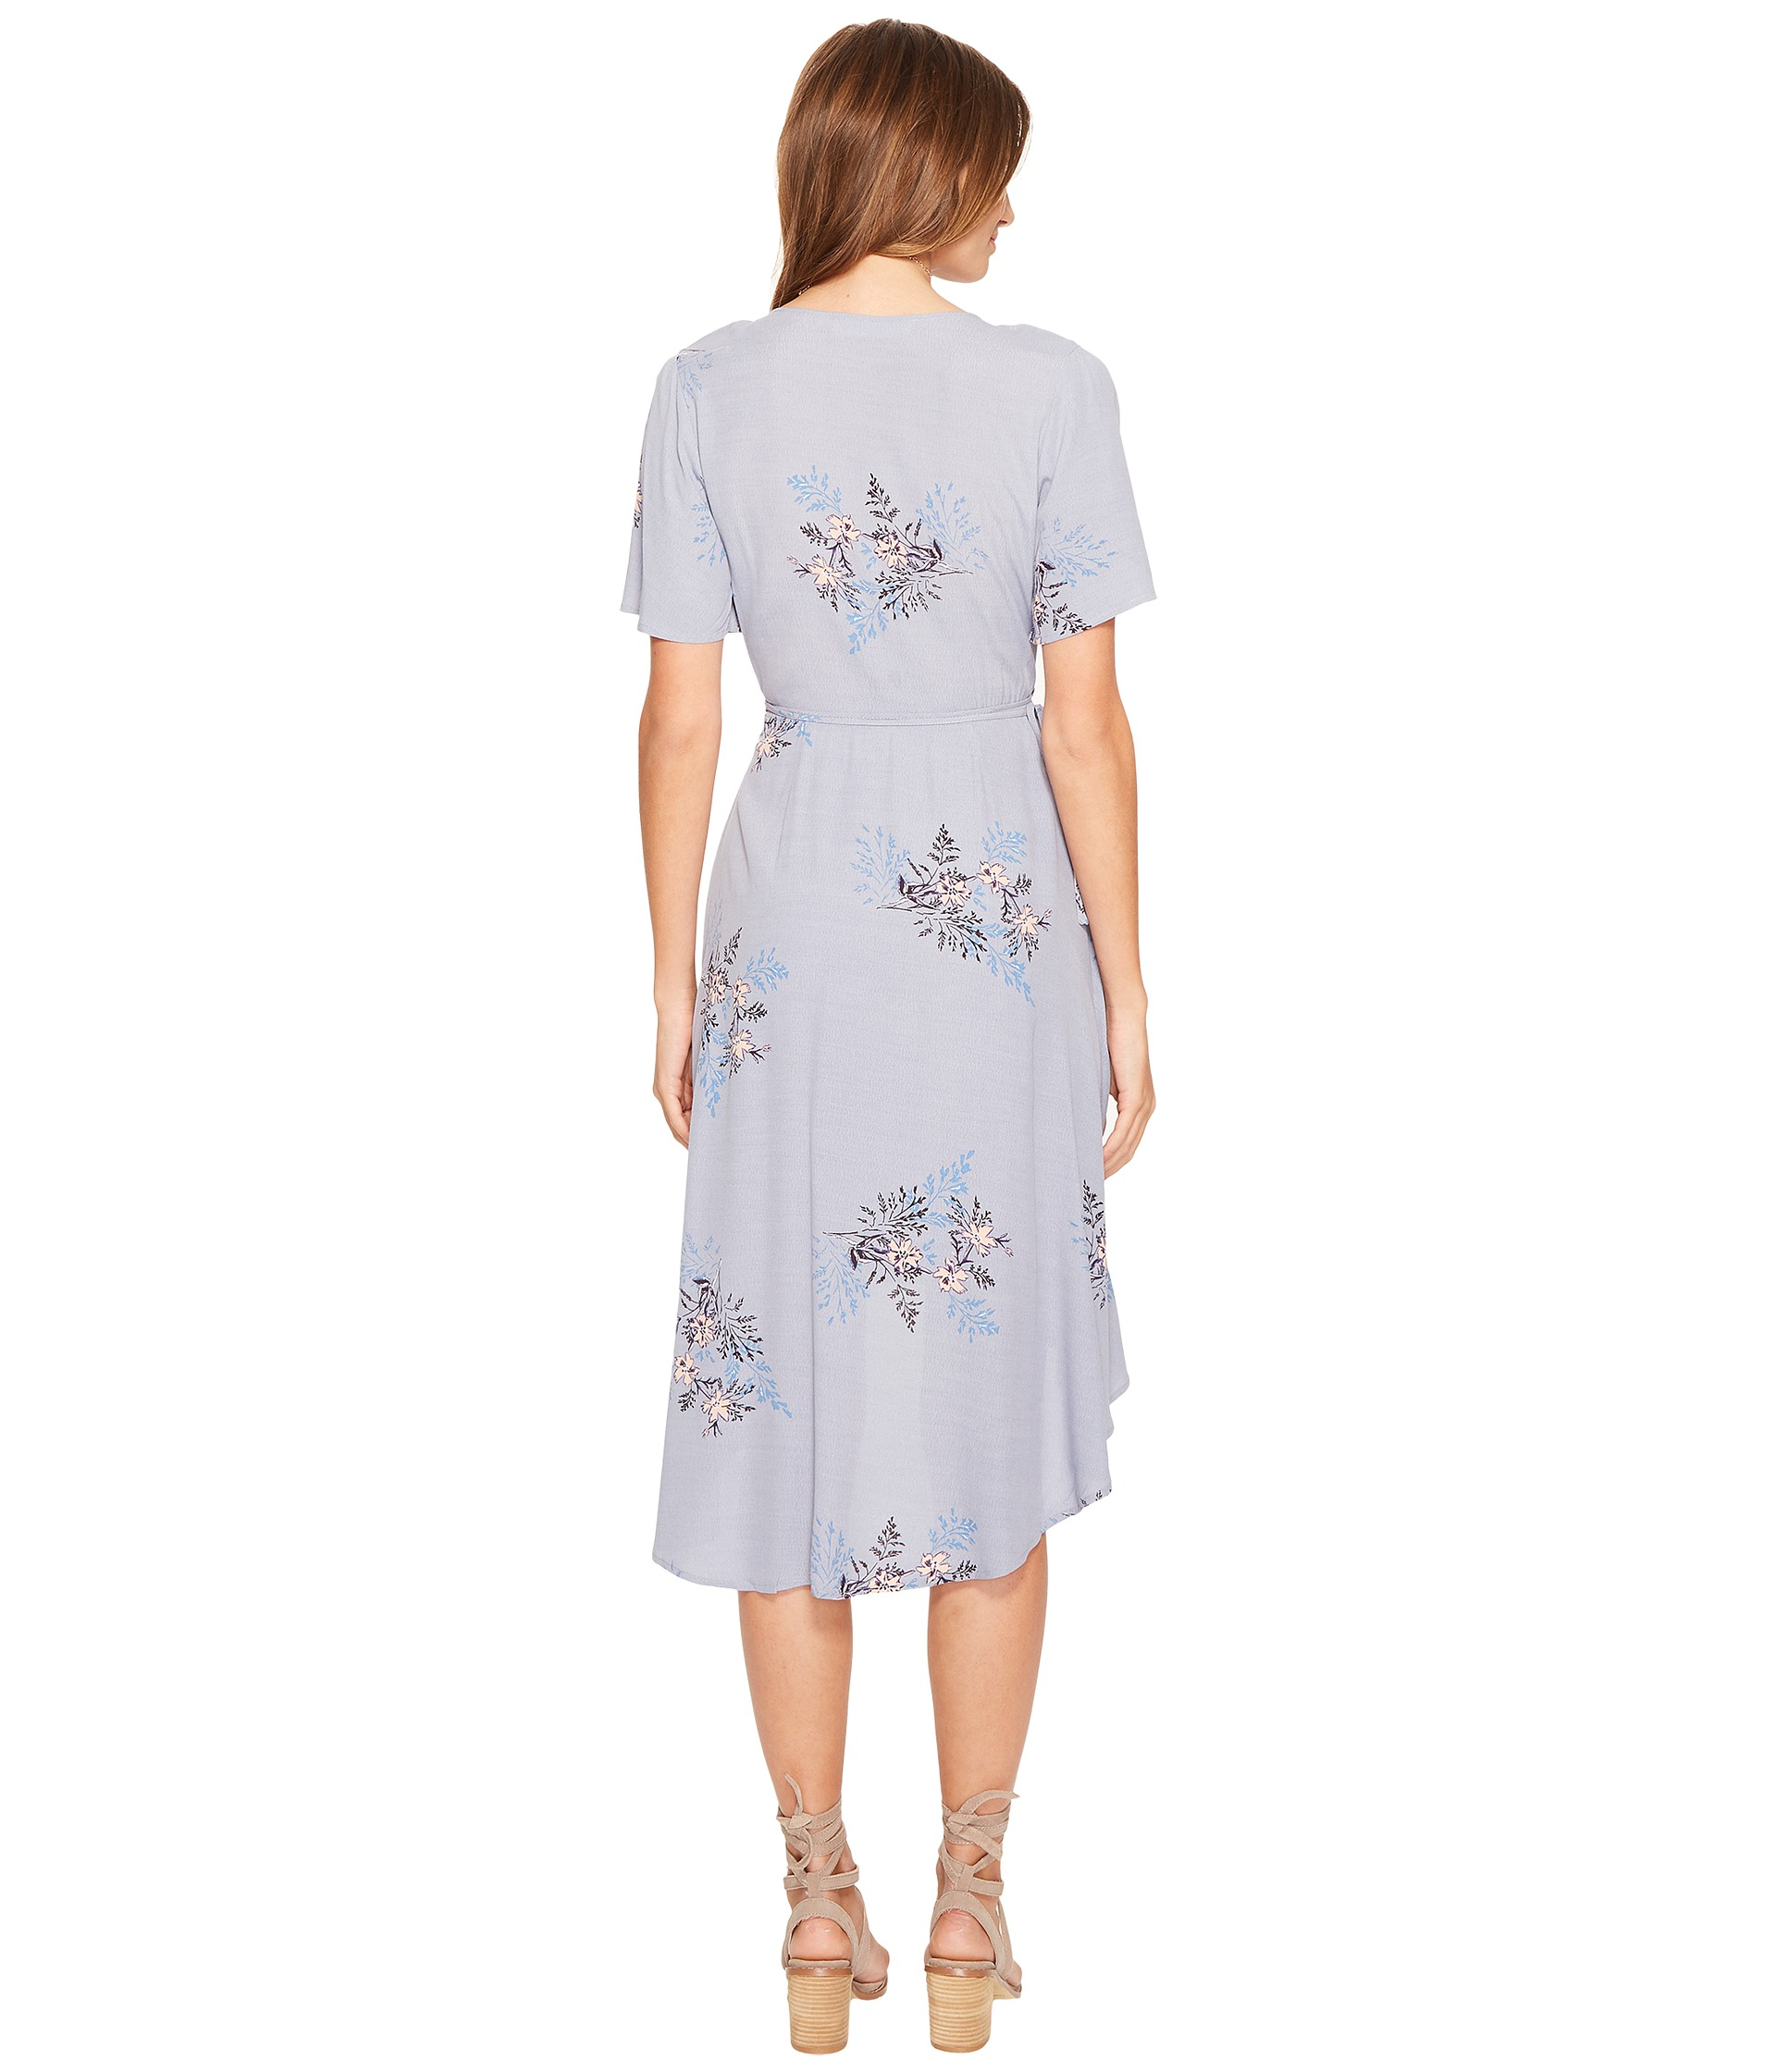 Astr The Label Adeline Dress At Zappos Com